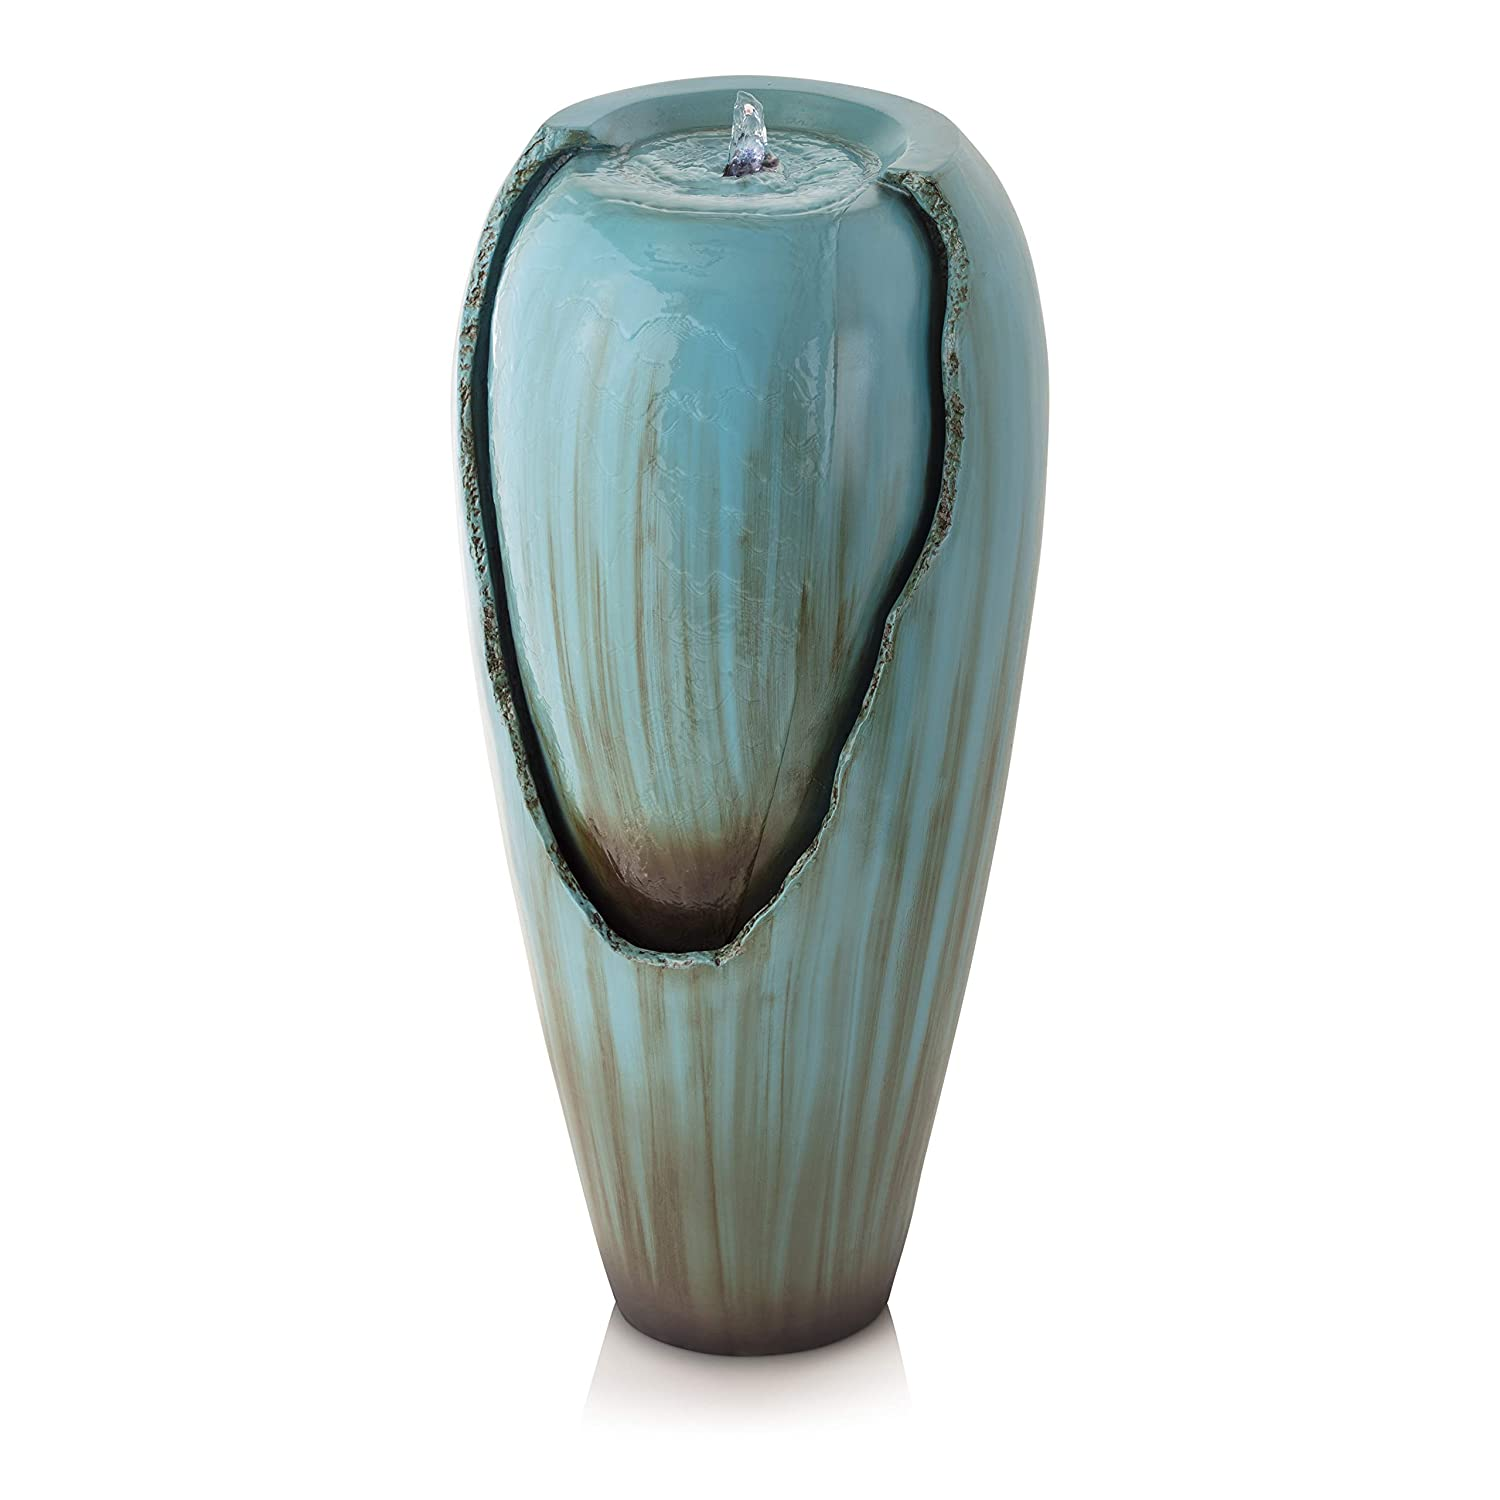 Alpine DIG100XS Water Jar Fountain w/LED Light, 32 Inch Tall, Turquoise